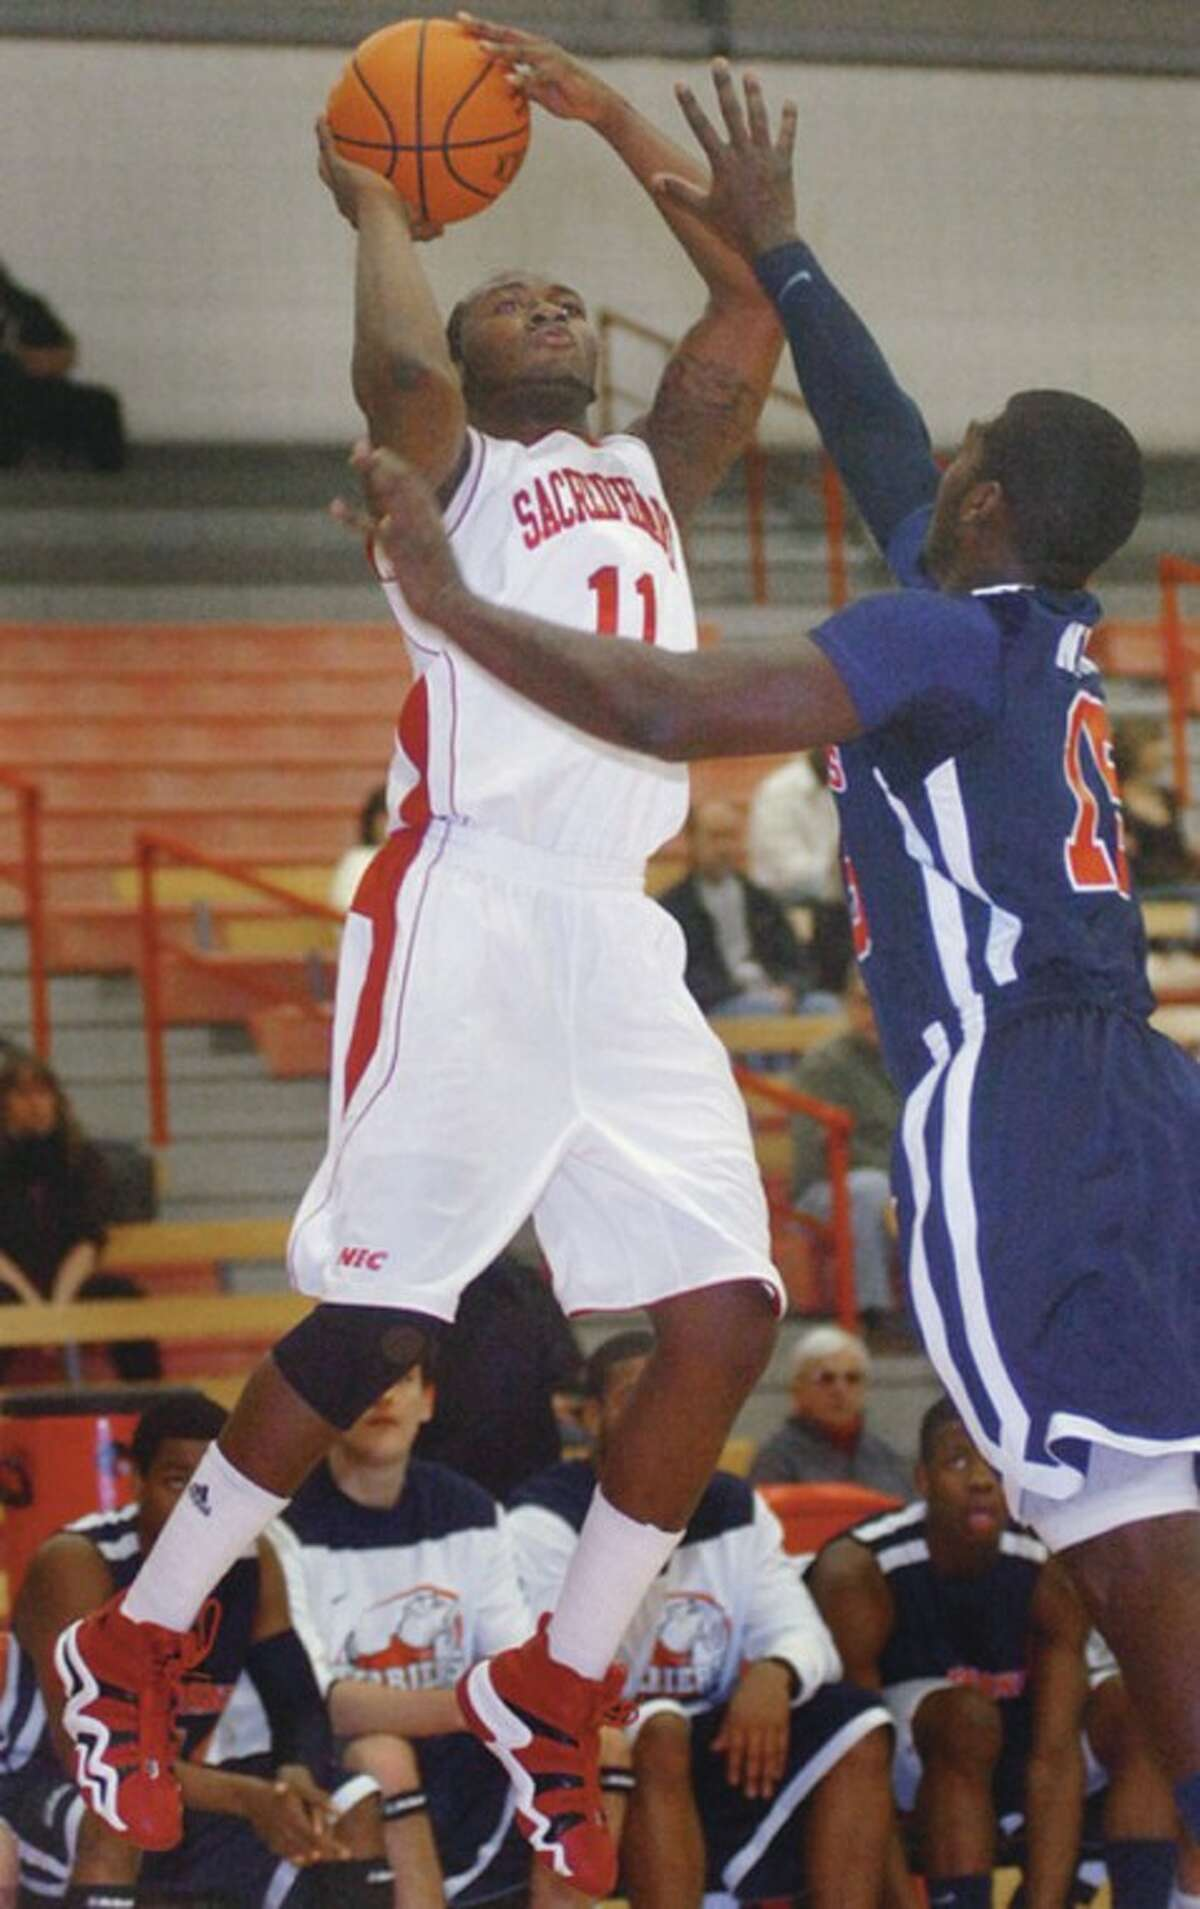 Hour photo/Erik Trautmann Sacred Heart men's basketball player Chris Evans (11) of Stamford is about to let go of a shot against St. Francis (N.Y.) Saturday afternoon at the Pitt Center. Evans scored a career-high 24 points in the Pioneers' 99-84 loss. Norwalk's Evan Kelley, who is a teammate and friend of Evans, didn't play in the game due to an ankle injury.